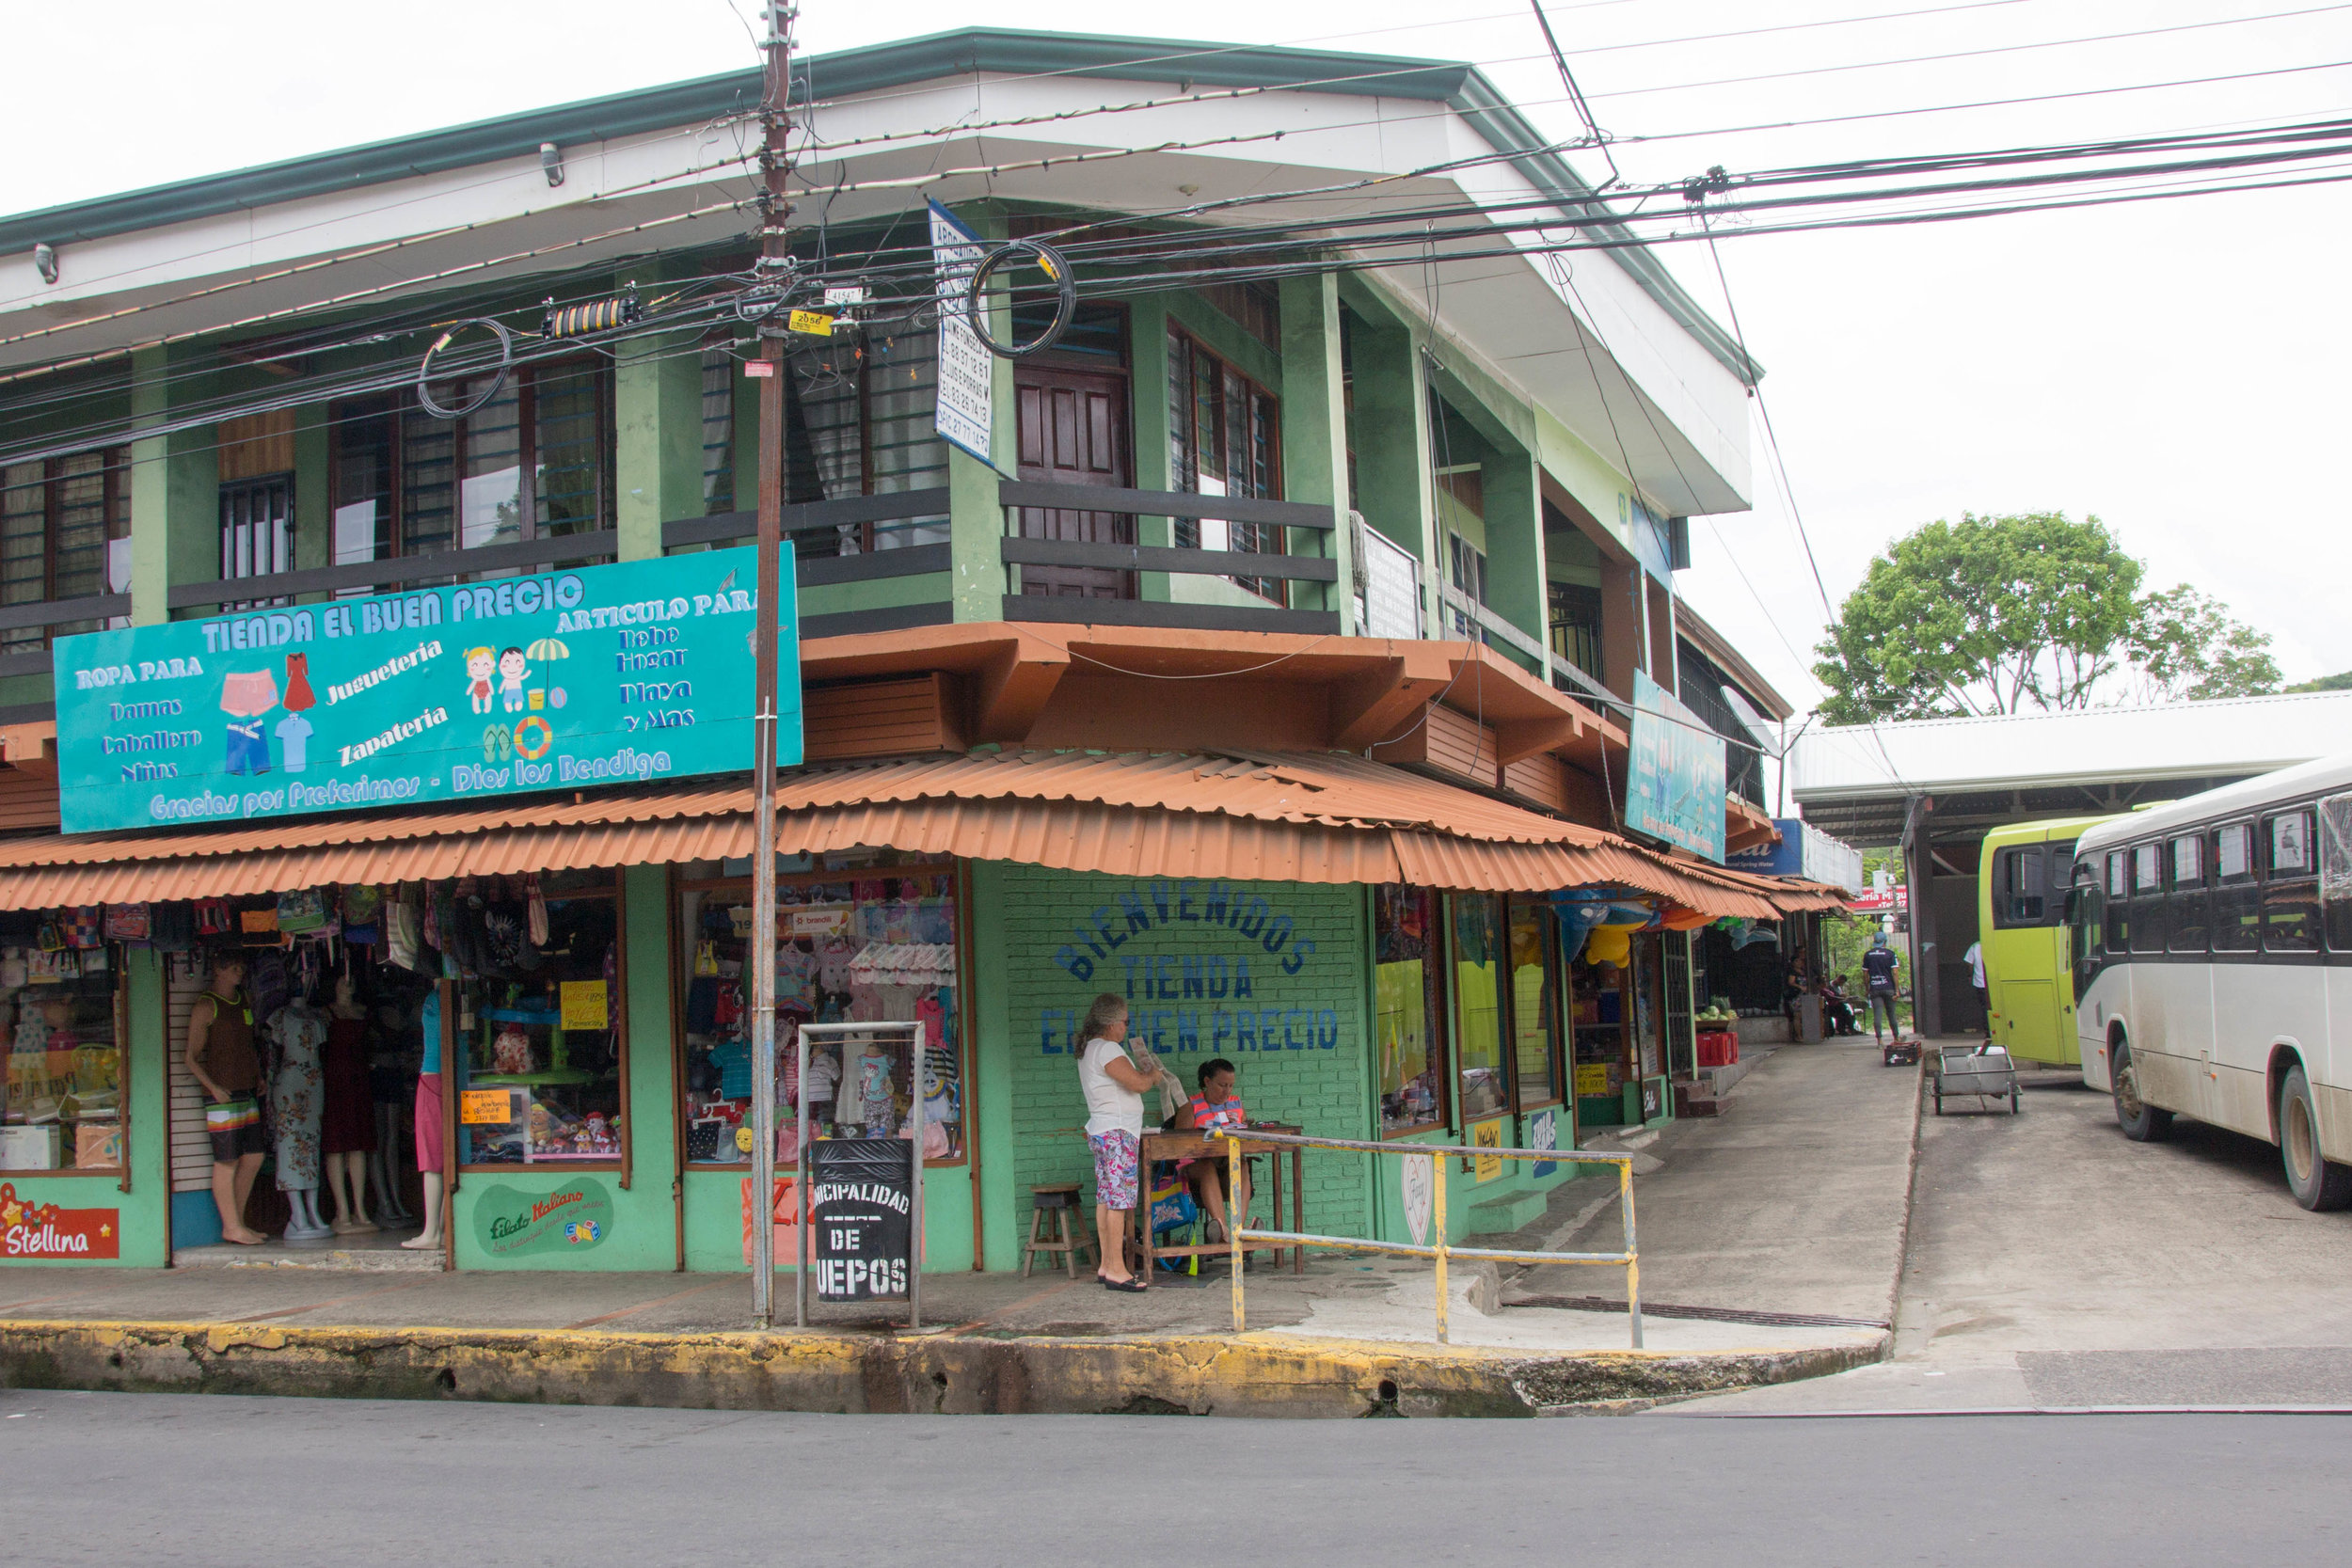 To the right of this store is the Quepos bus station. You can't miss it- it is in the middle of the town.